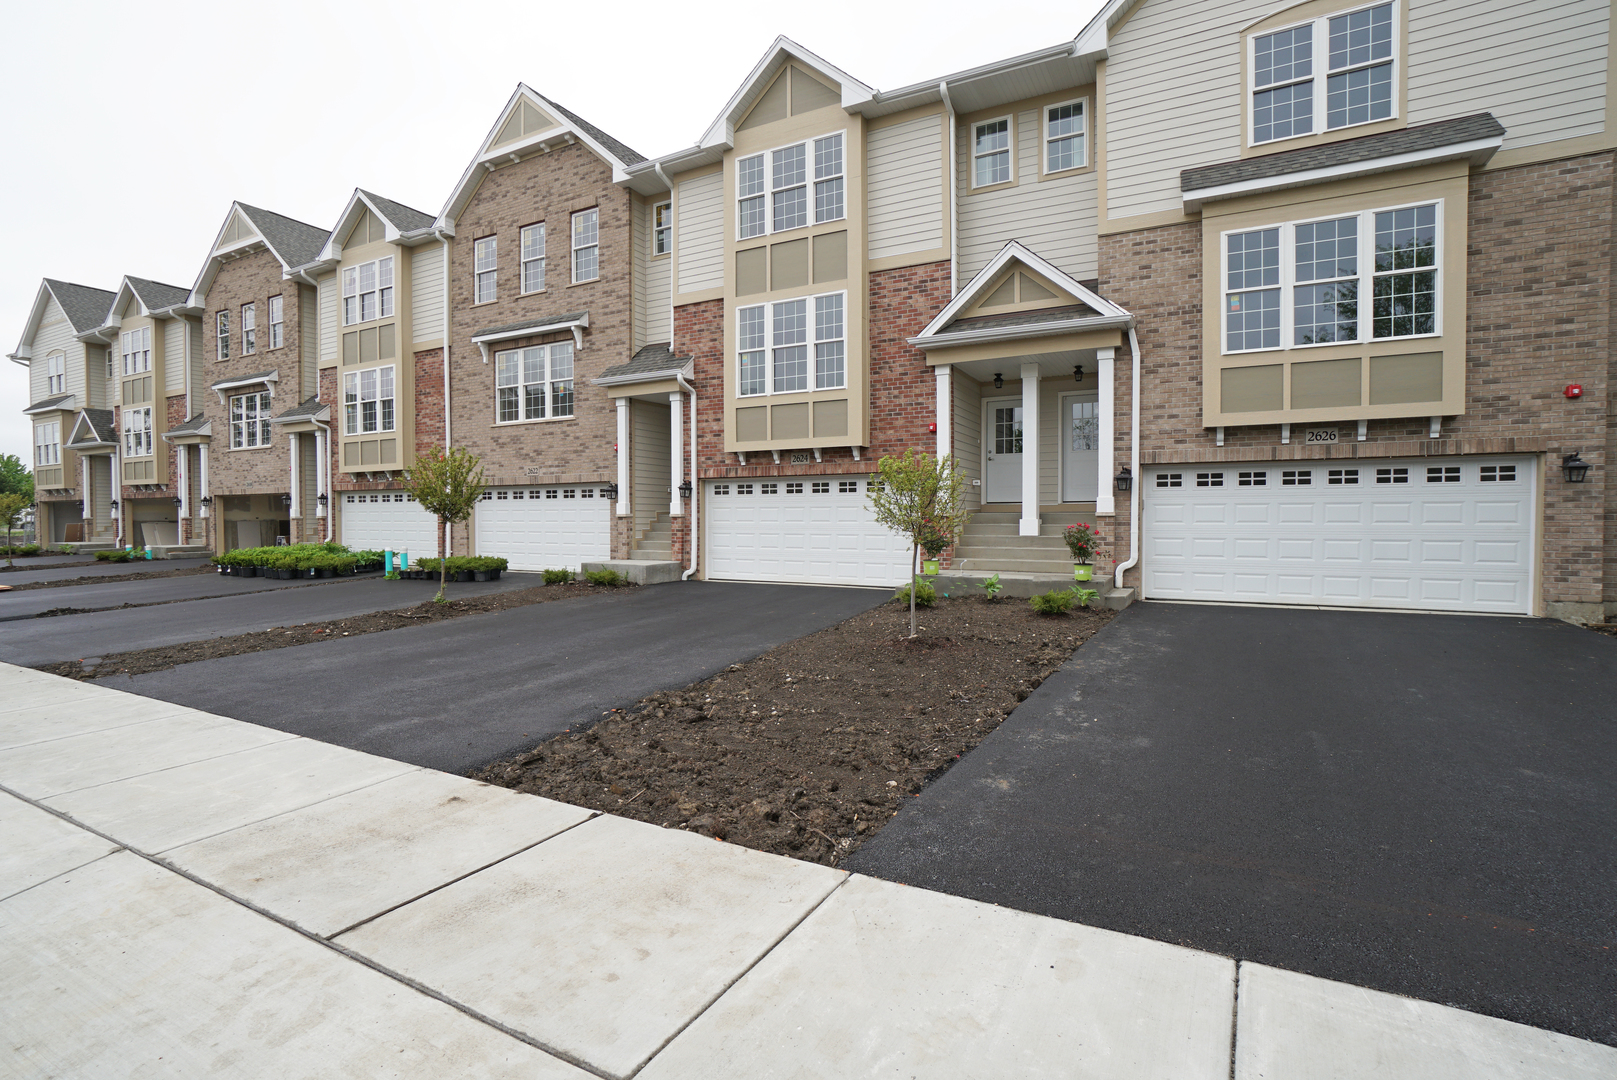 2624 Chelsey Street, Buffalo Grove in Lake County, IL 60089 Home for Sale